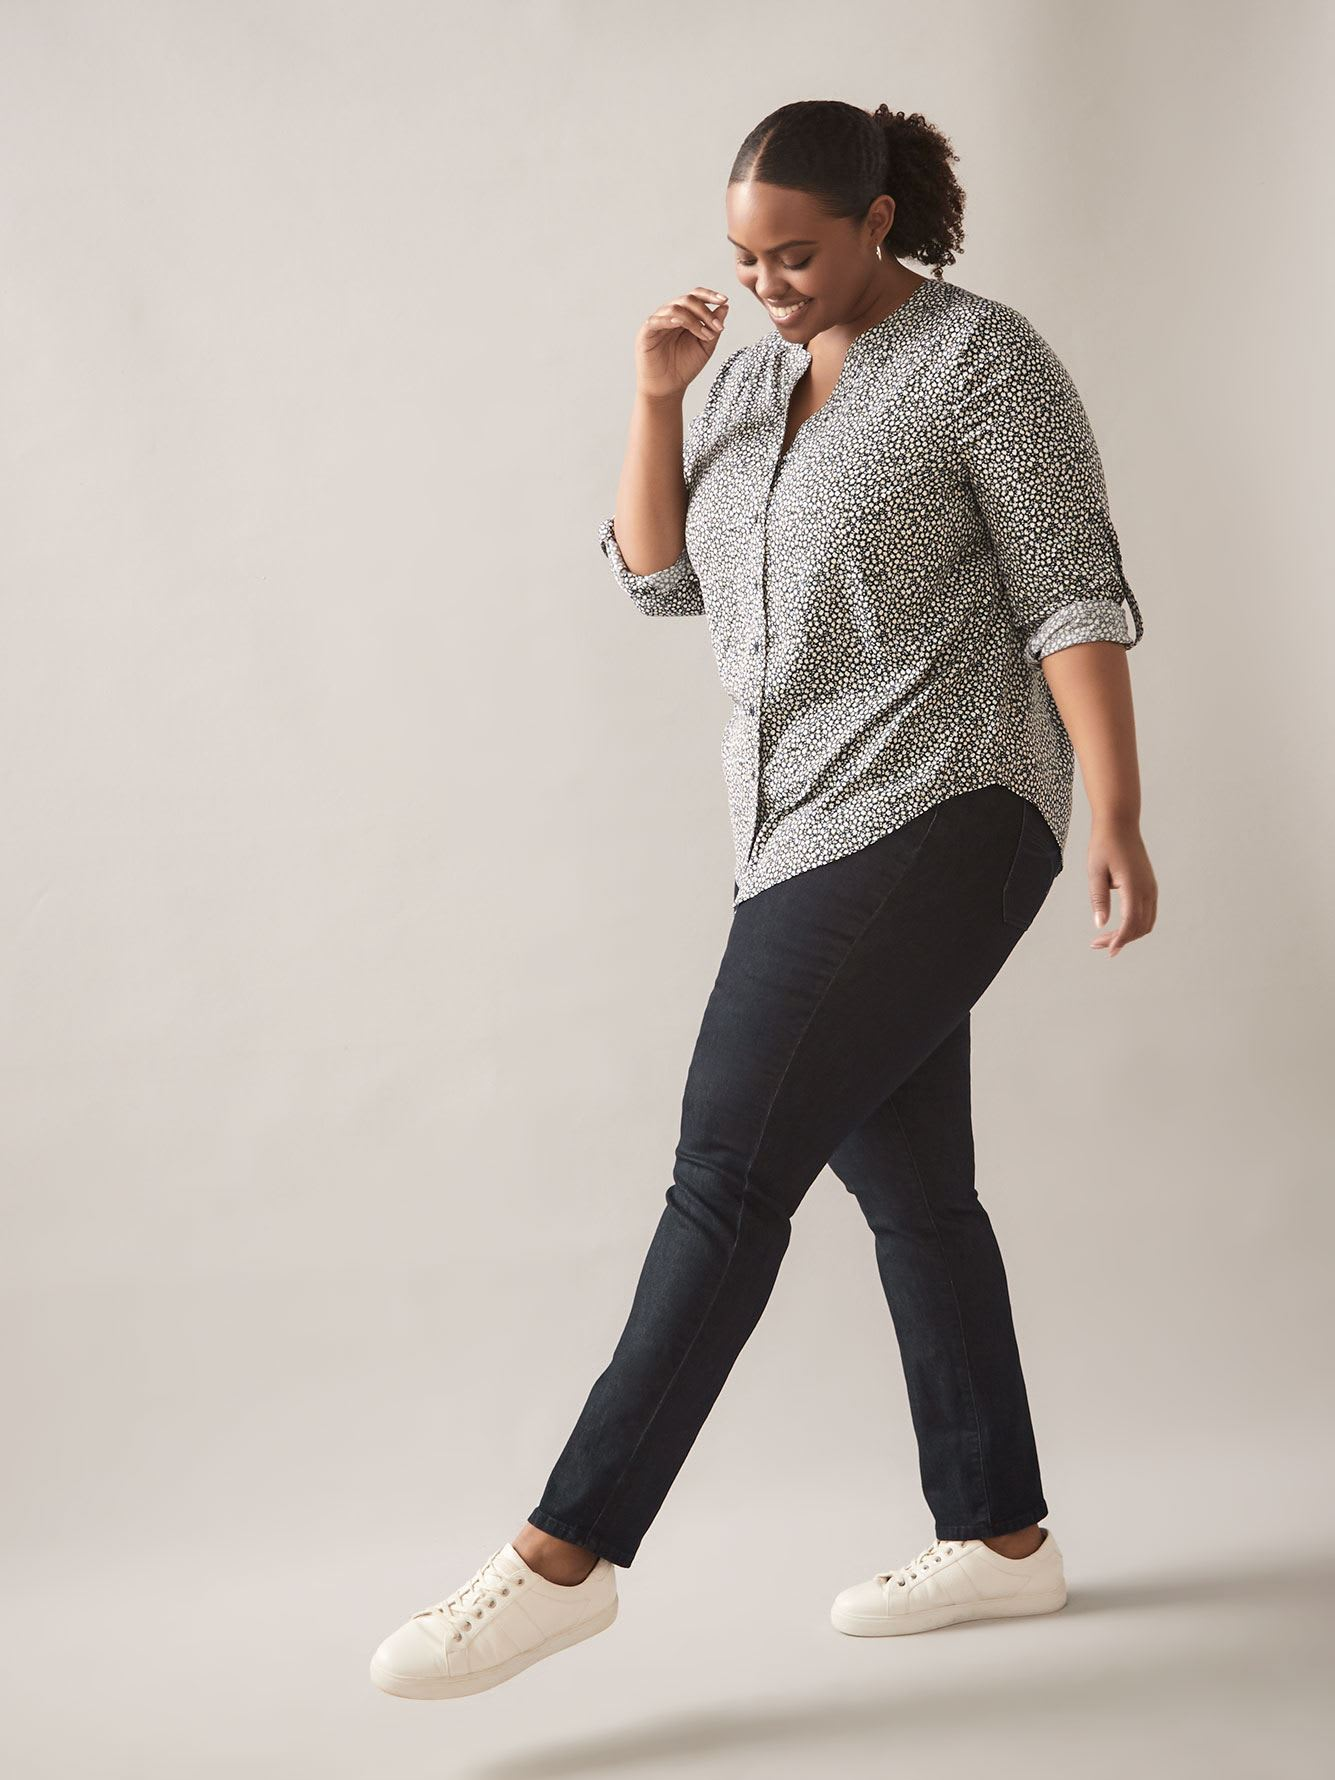 Petite, Savvy Fit, Straight-Leg Dark Jeans - In Every Story